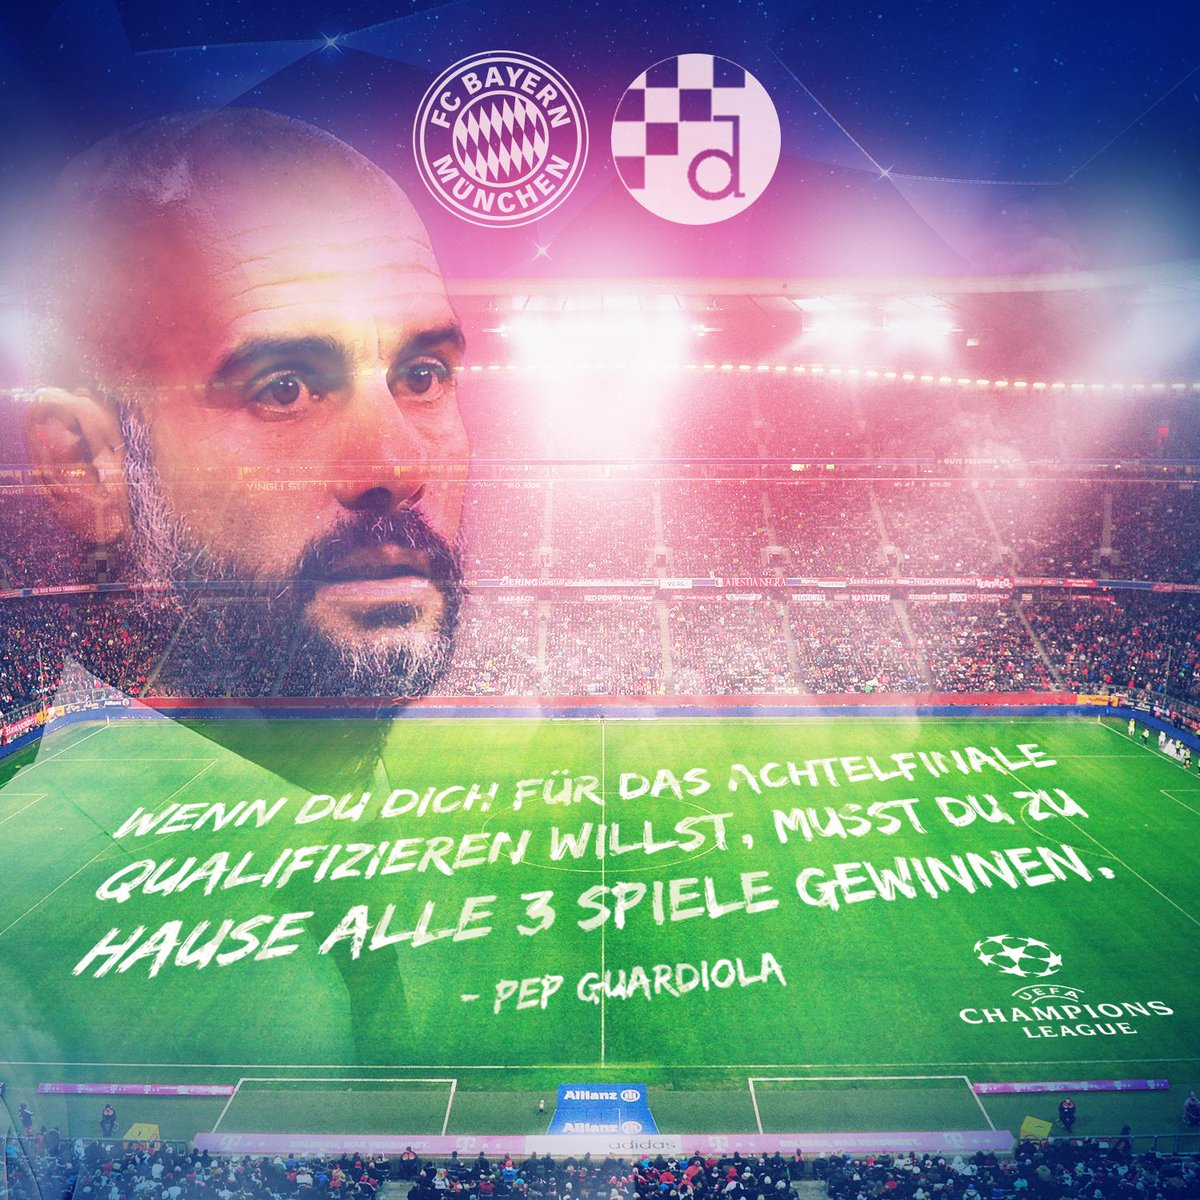 champions league match heute